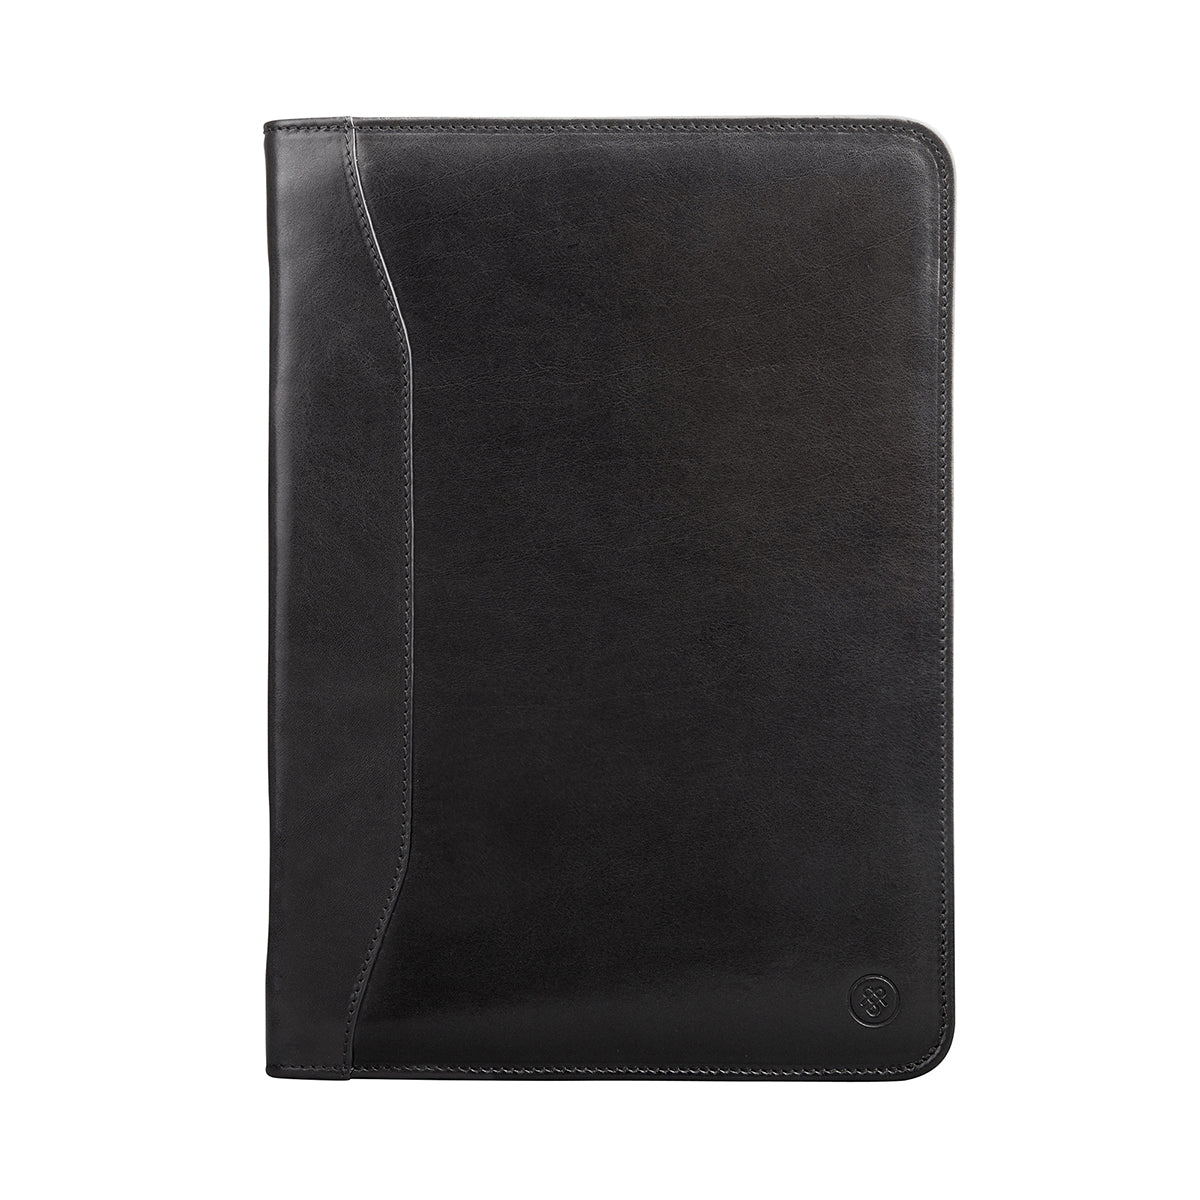 Image 1 of the 'Dimaro' Black Leather Document Case